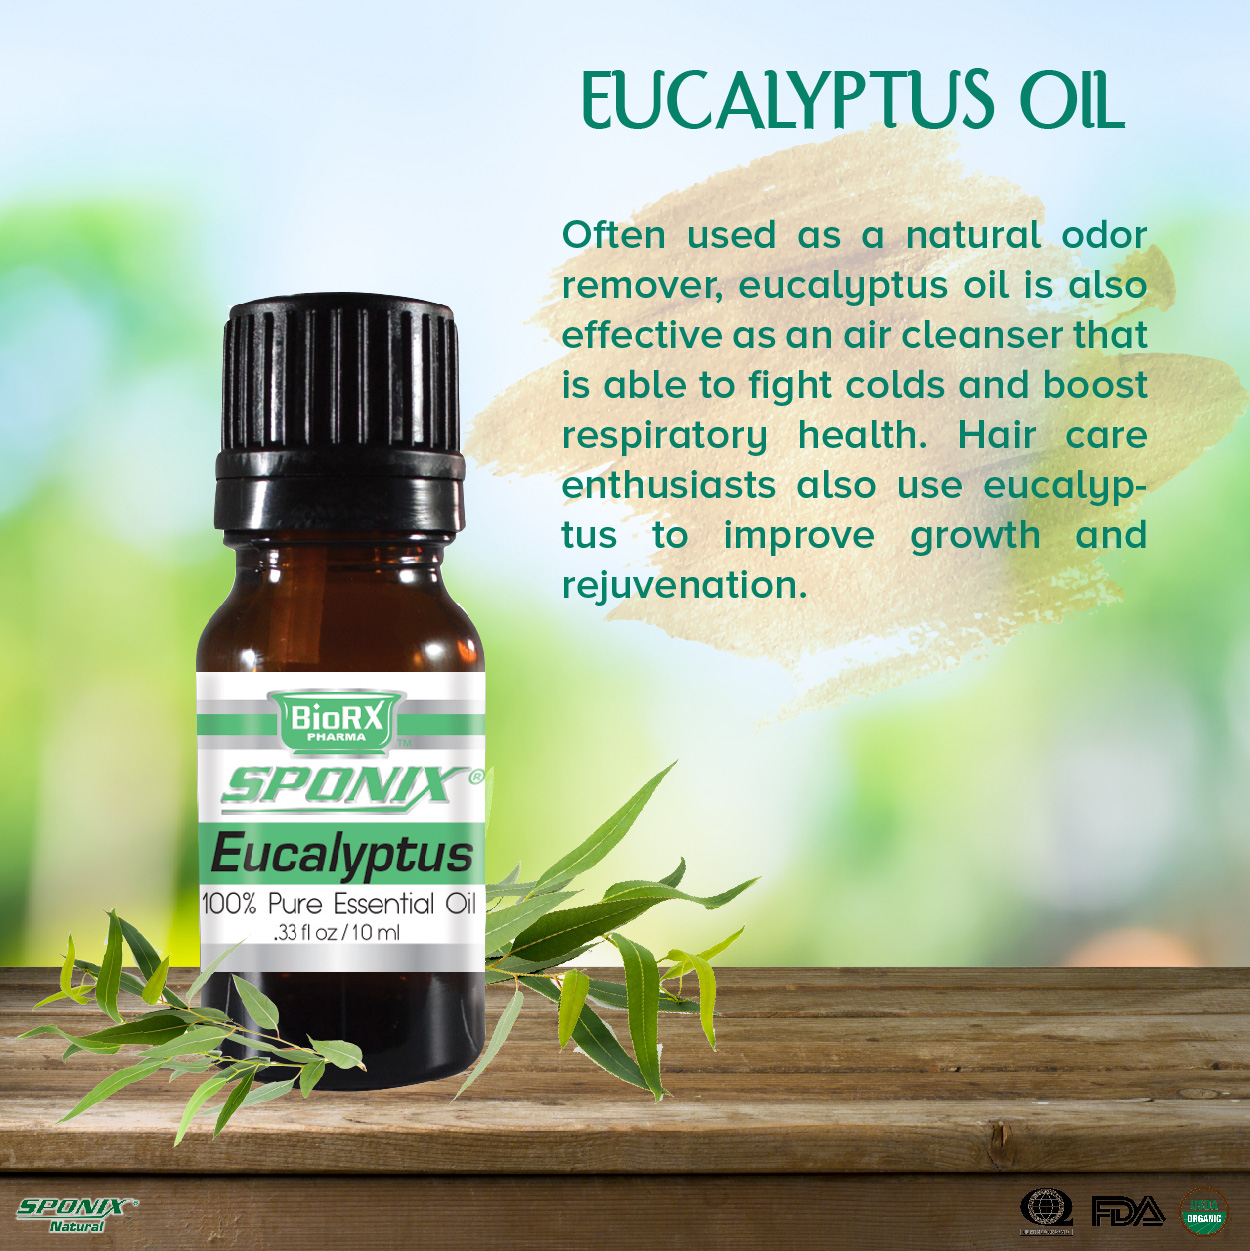 sponix_items_eucalyptus